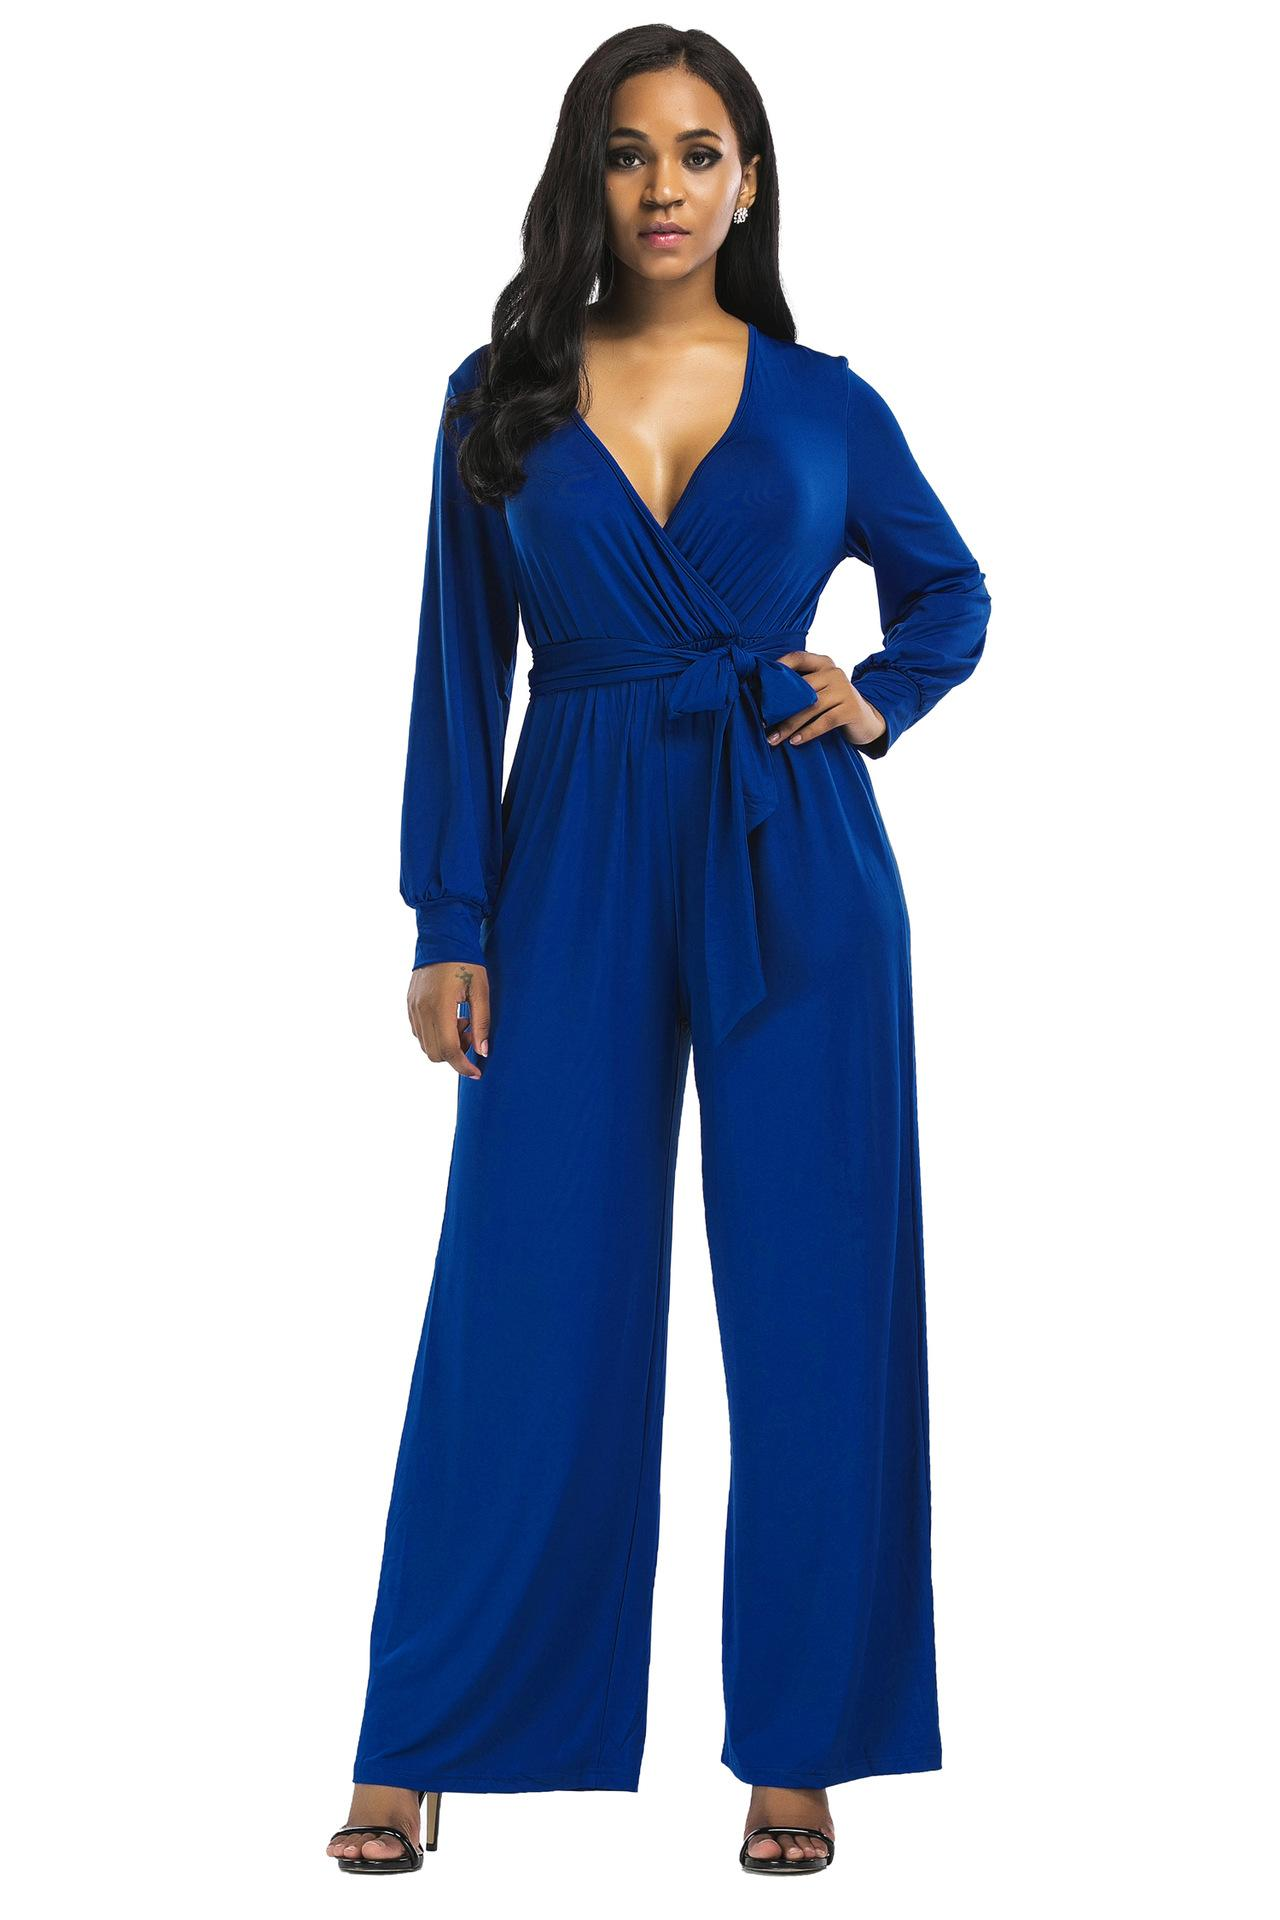 7a6e370d116 2019 Wide Legs Jumpsuit V Collar Women Fashion Pants Full Sleeve Spring  Autumn Wear Natural Color Casual Apparel Women One Piece Jumpsuits From  Hentika